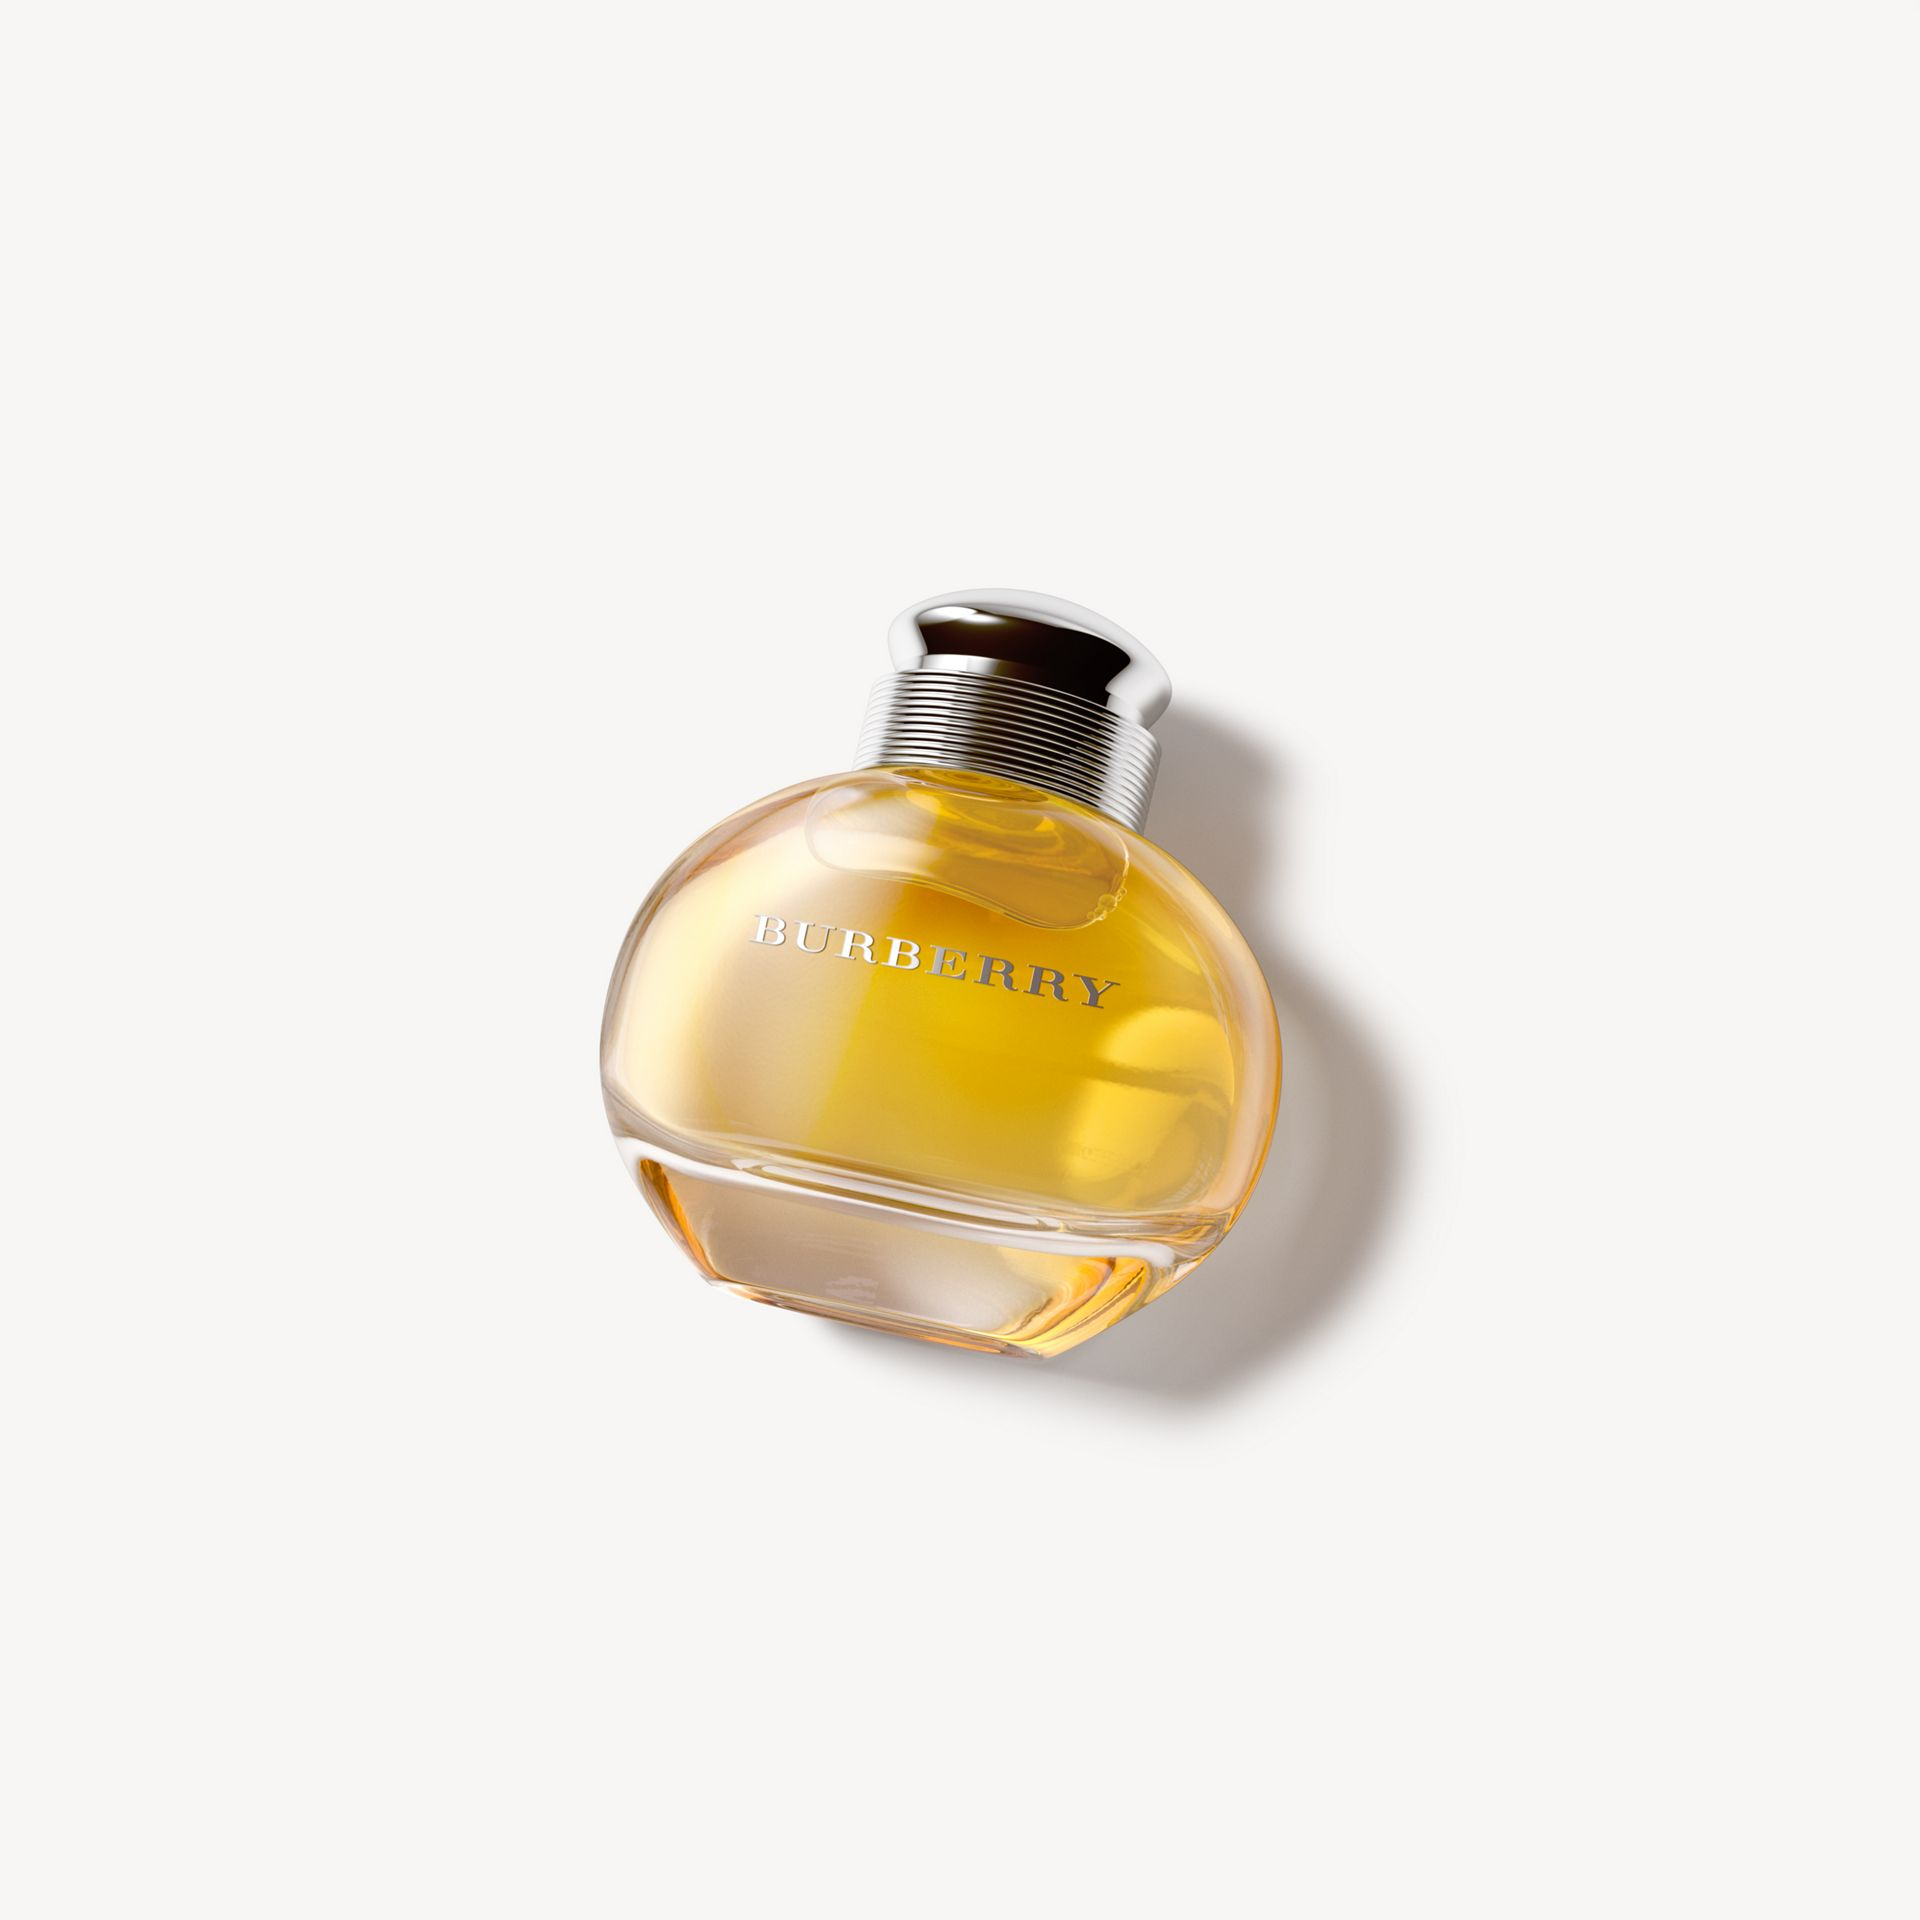 Burberry For Women Eau de Parfum 50ml - Women | Burberry United Kingdom - gallery image 0